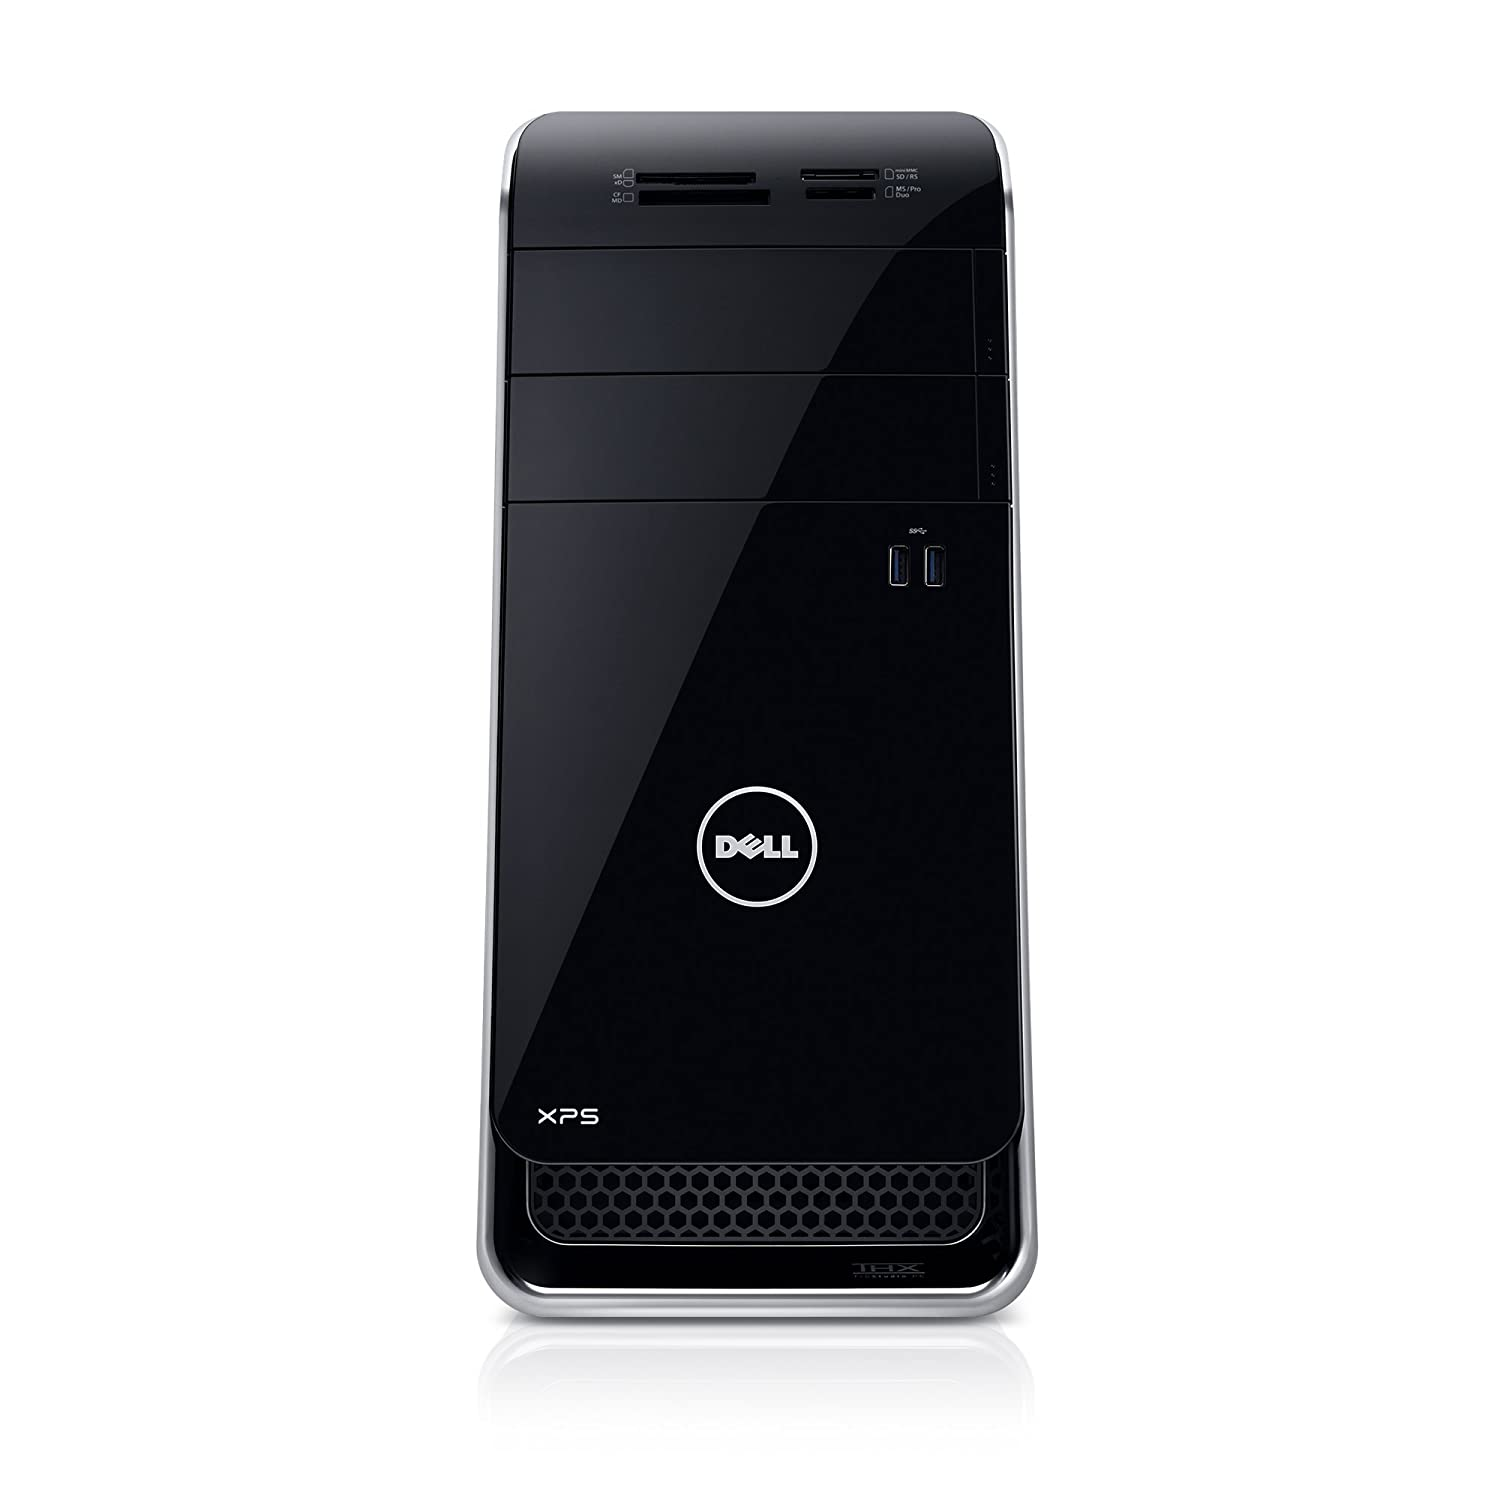 Dell | XPS x8900-944BLK Desktop | 6th Generation Intel Core i5, 8 GB RAM, 1 TB HDD | NVIDIA GeForce GTX 745